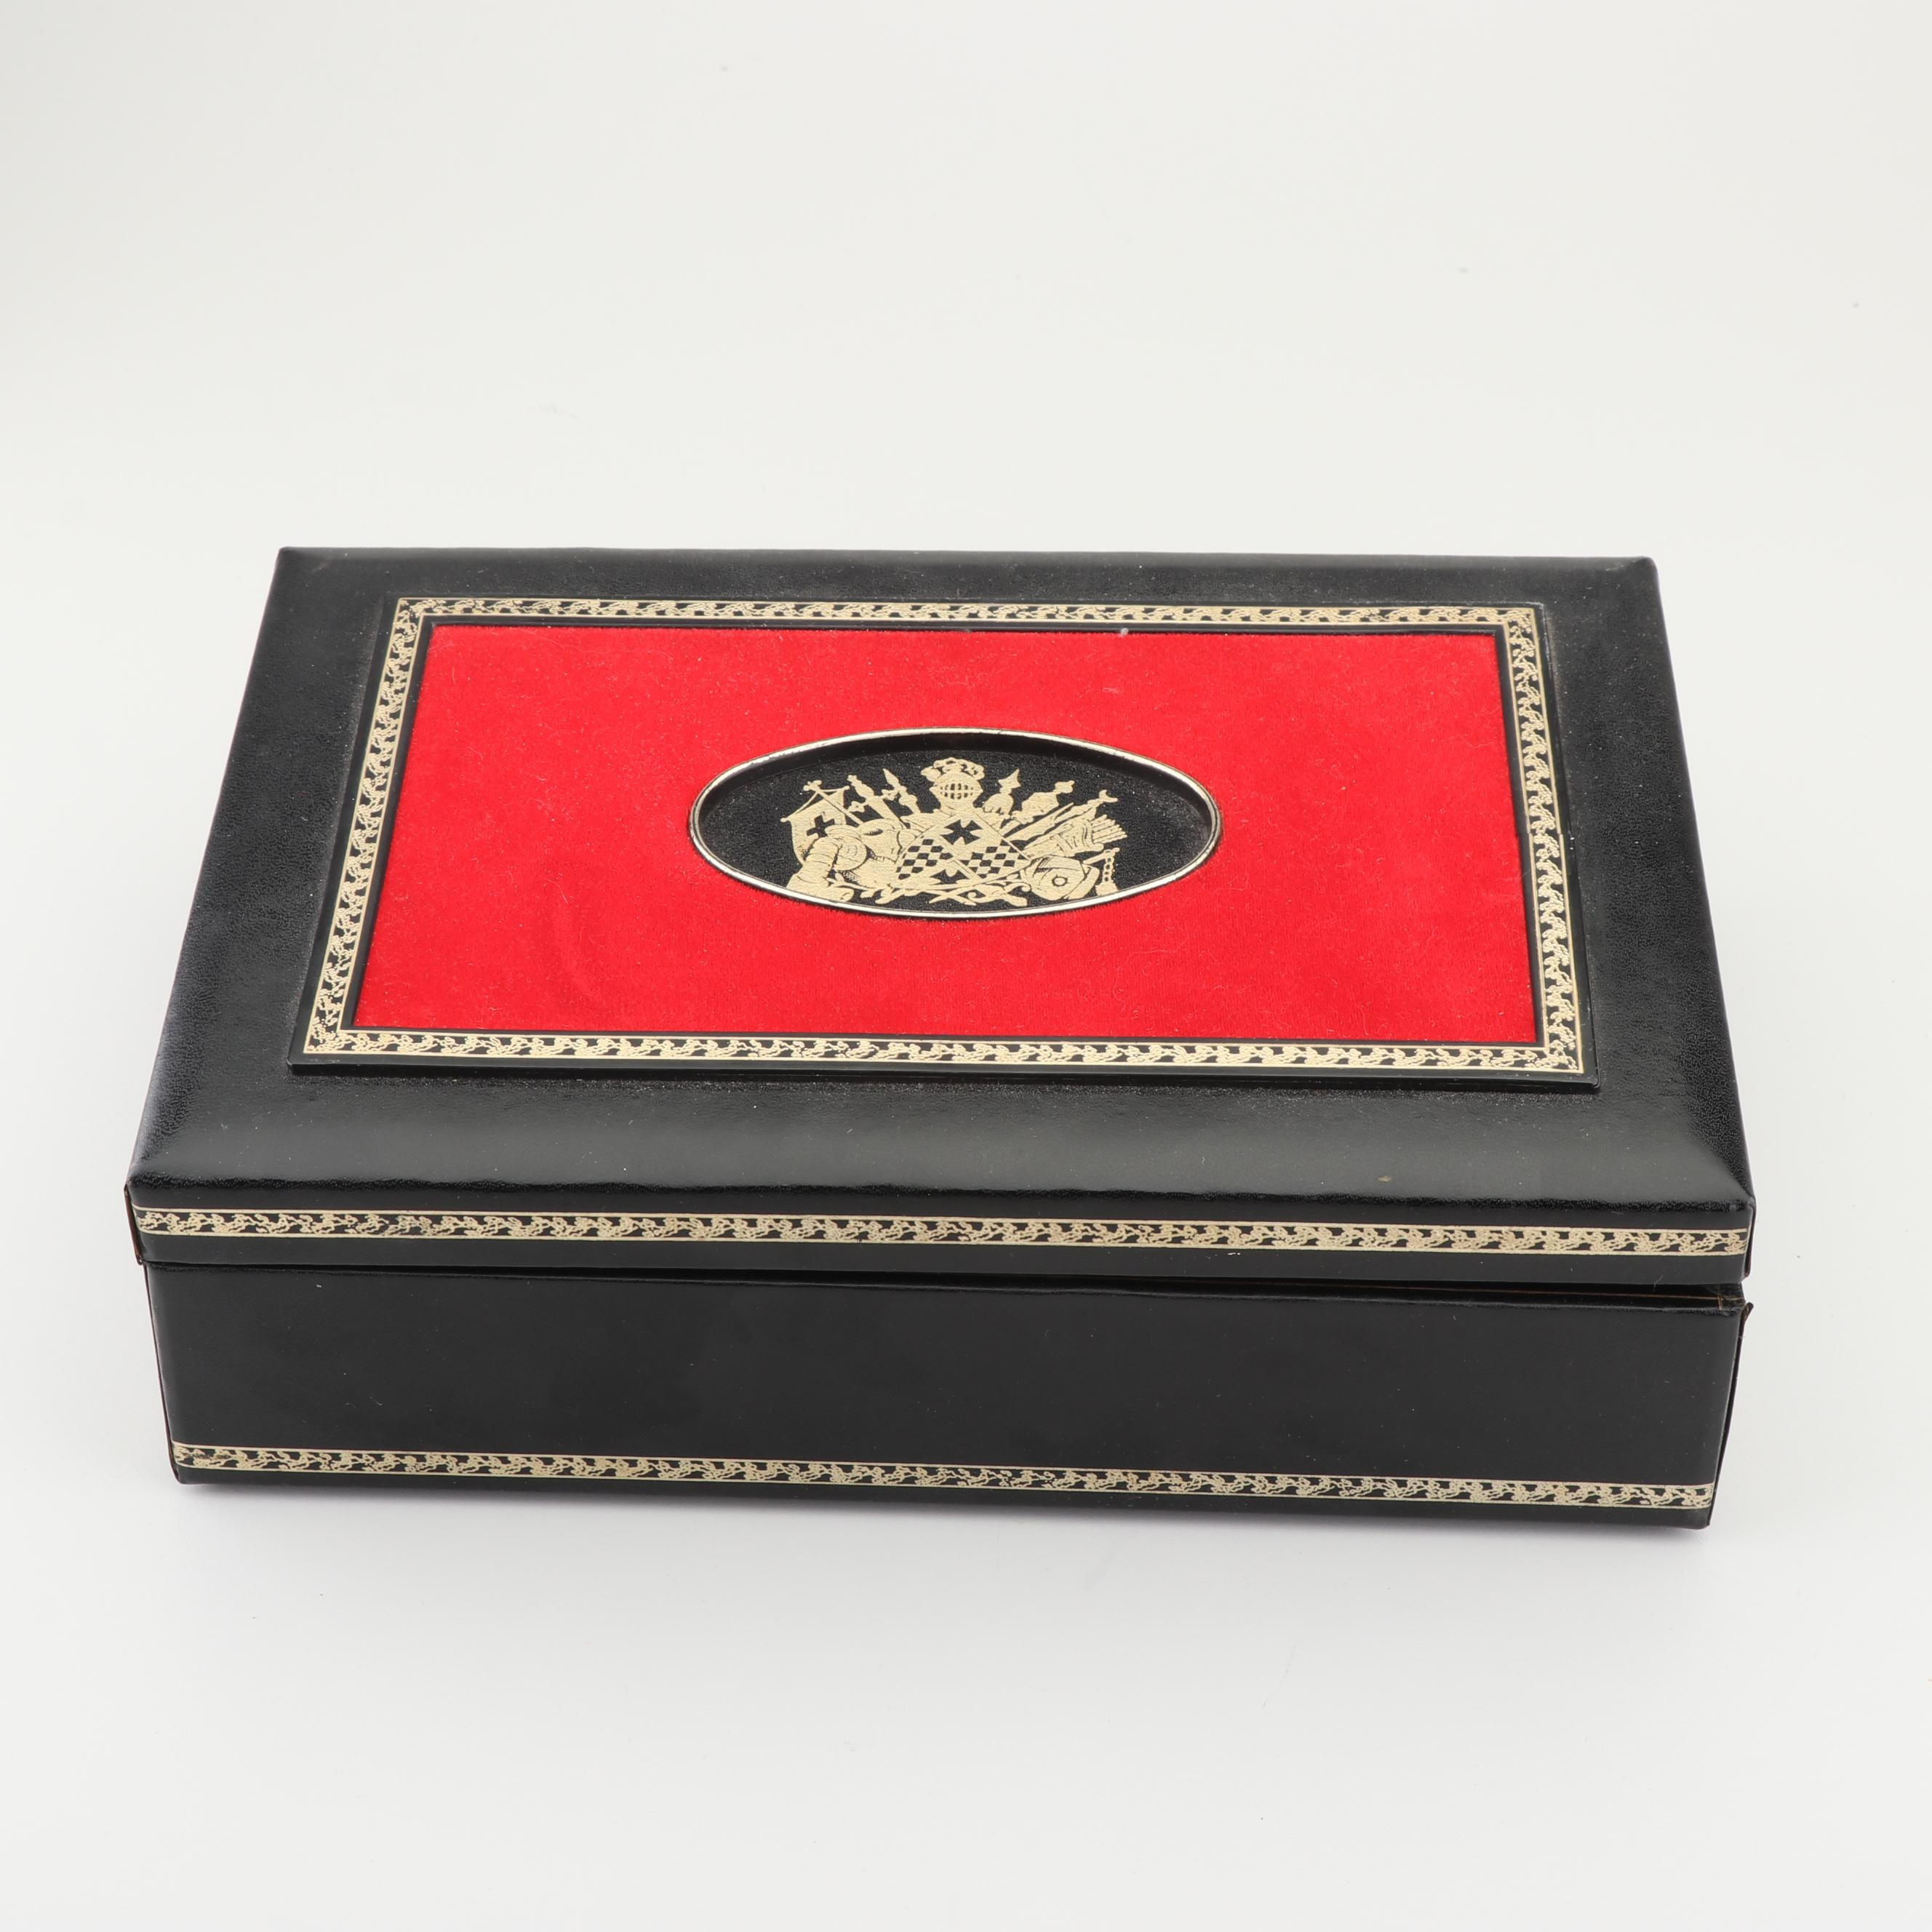 Swank Jewelry Case with Bejeweled Cufflinks and Tie Pins